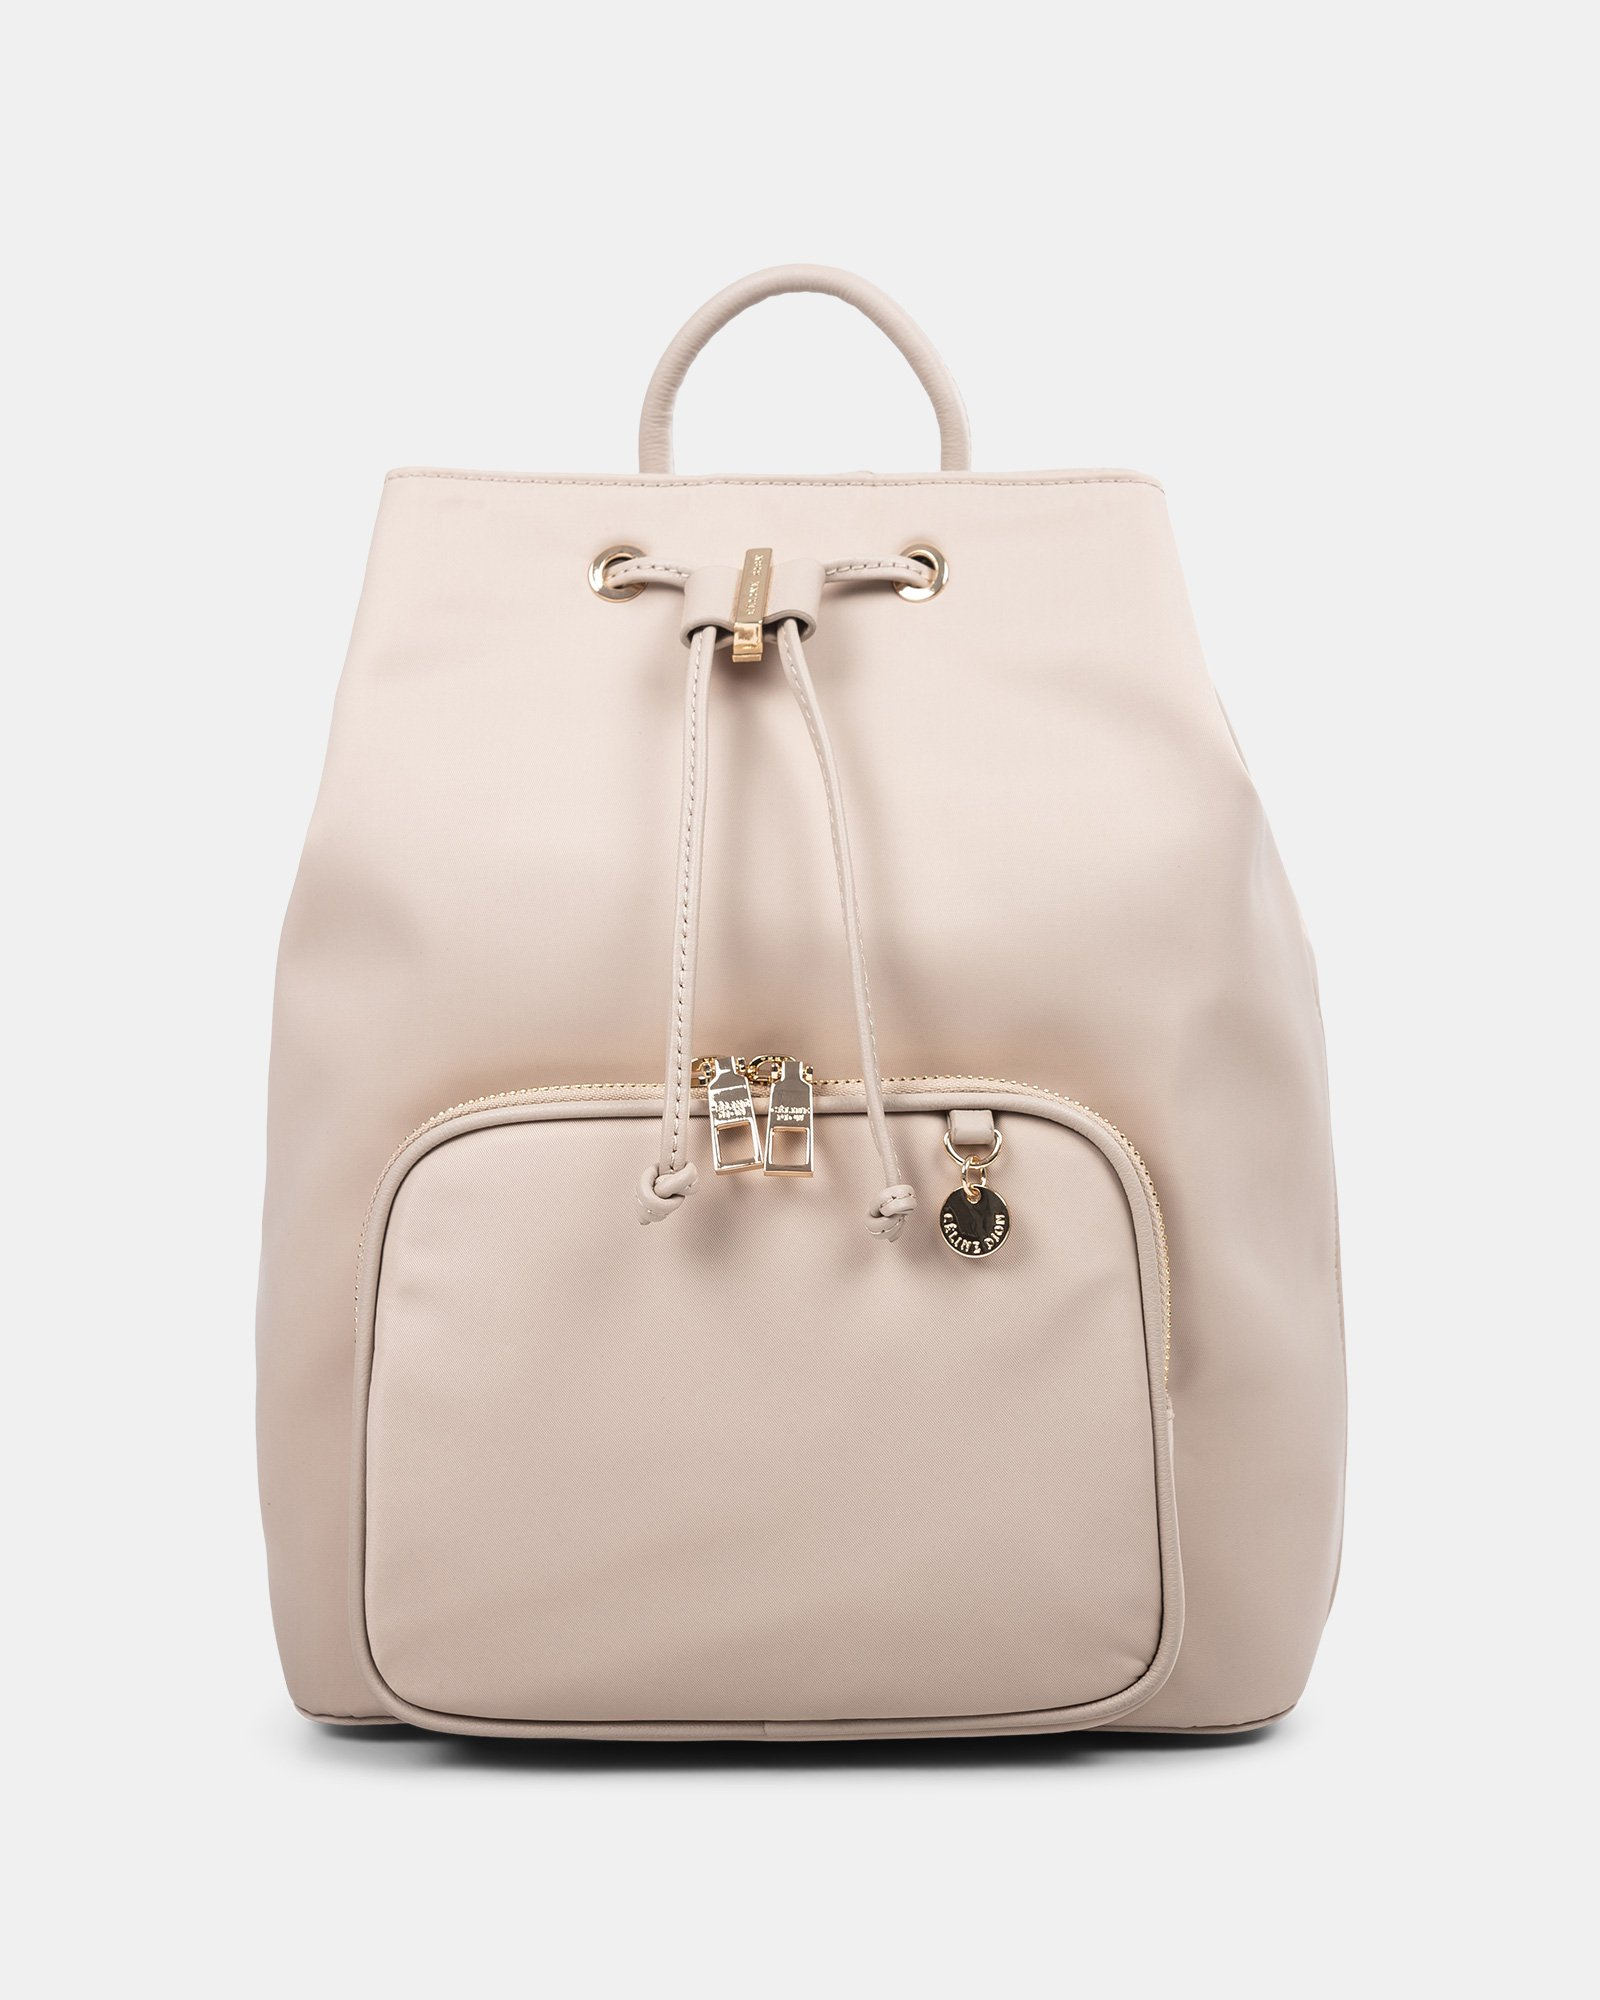 NYLON - Convertible backpack 2 in 1 WITH RFID PROTECTION - TAUPE - Céline Dion - Zoom